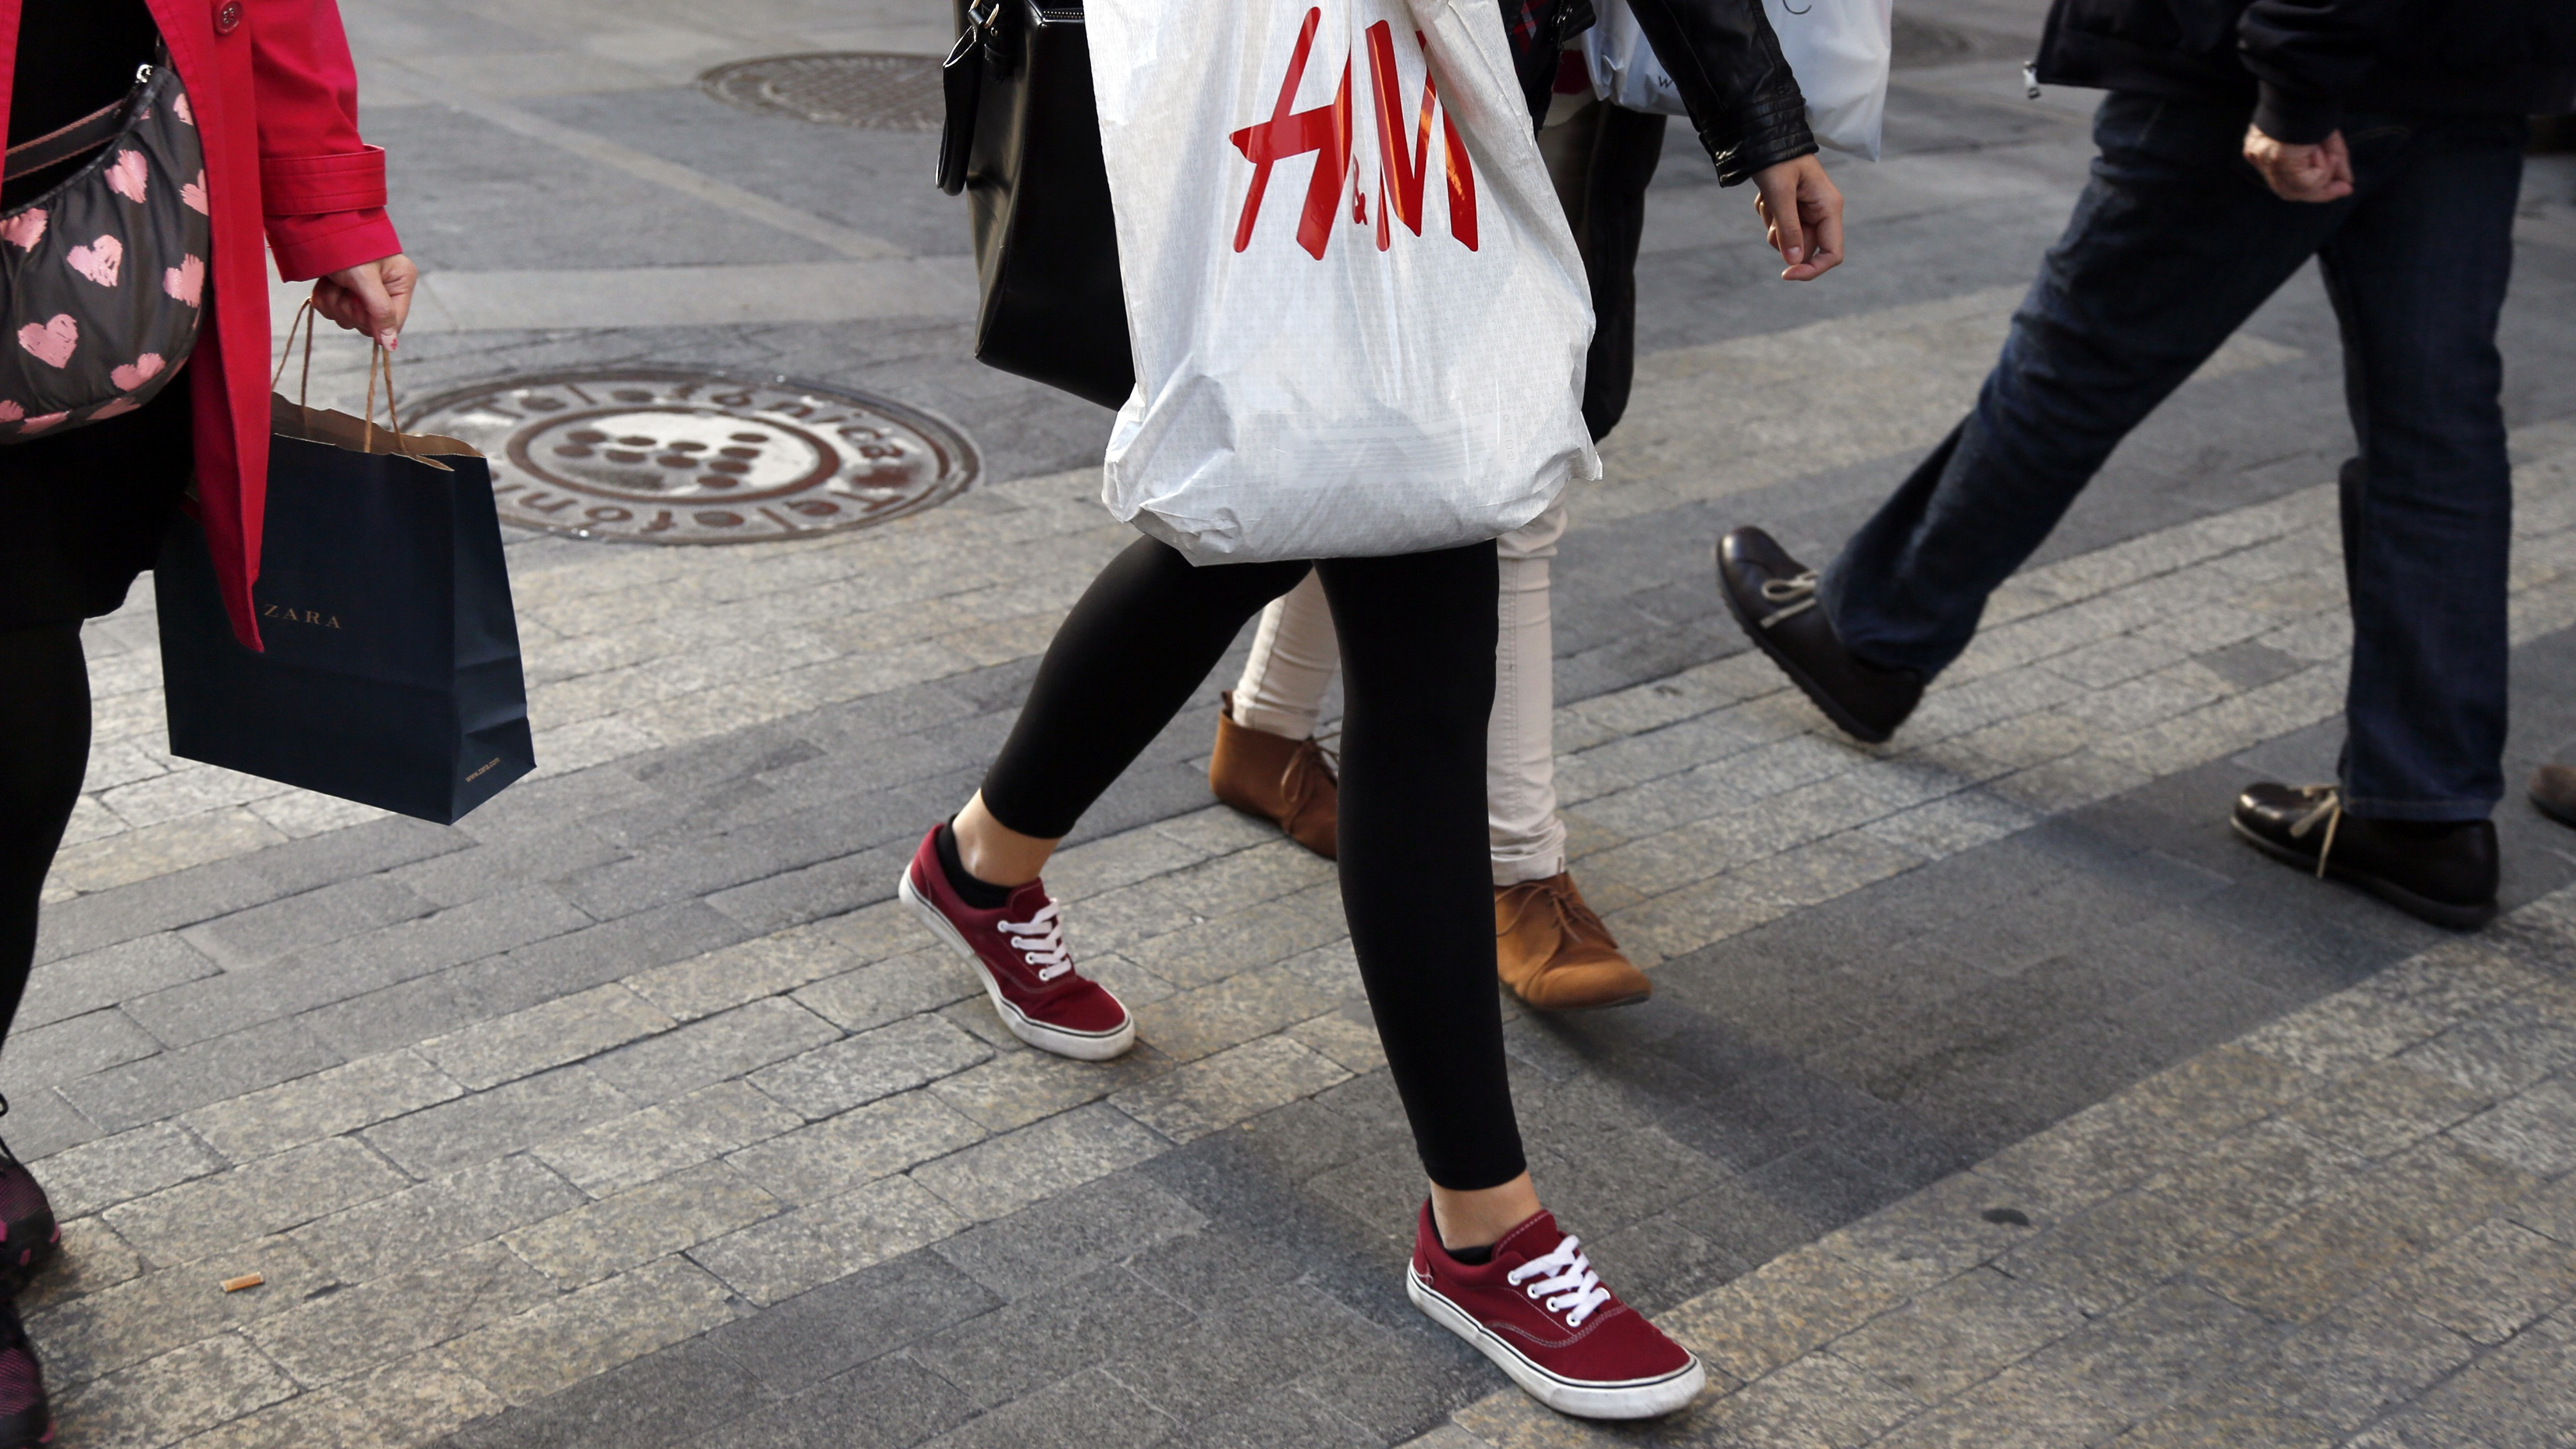 Women with Zara (L) and H&M (C) shopping bags walk at a shopping district